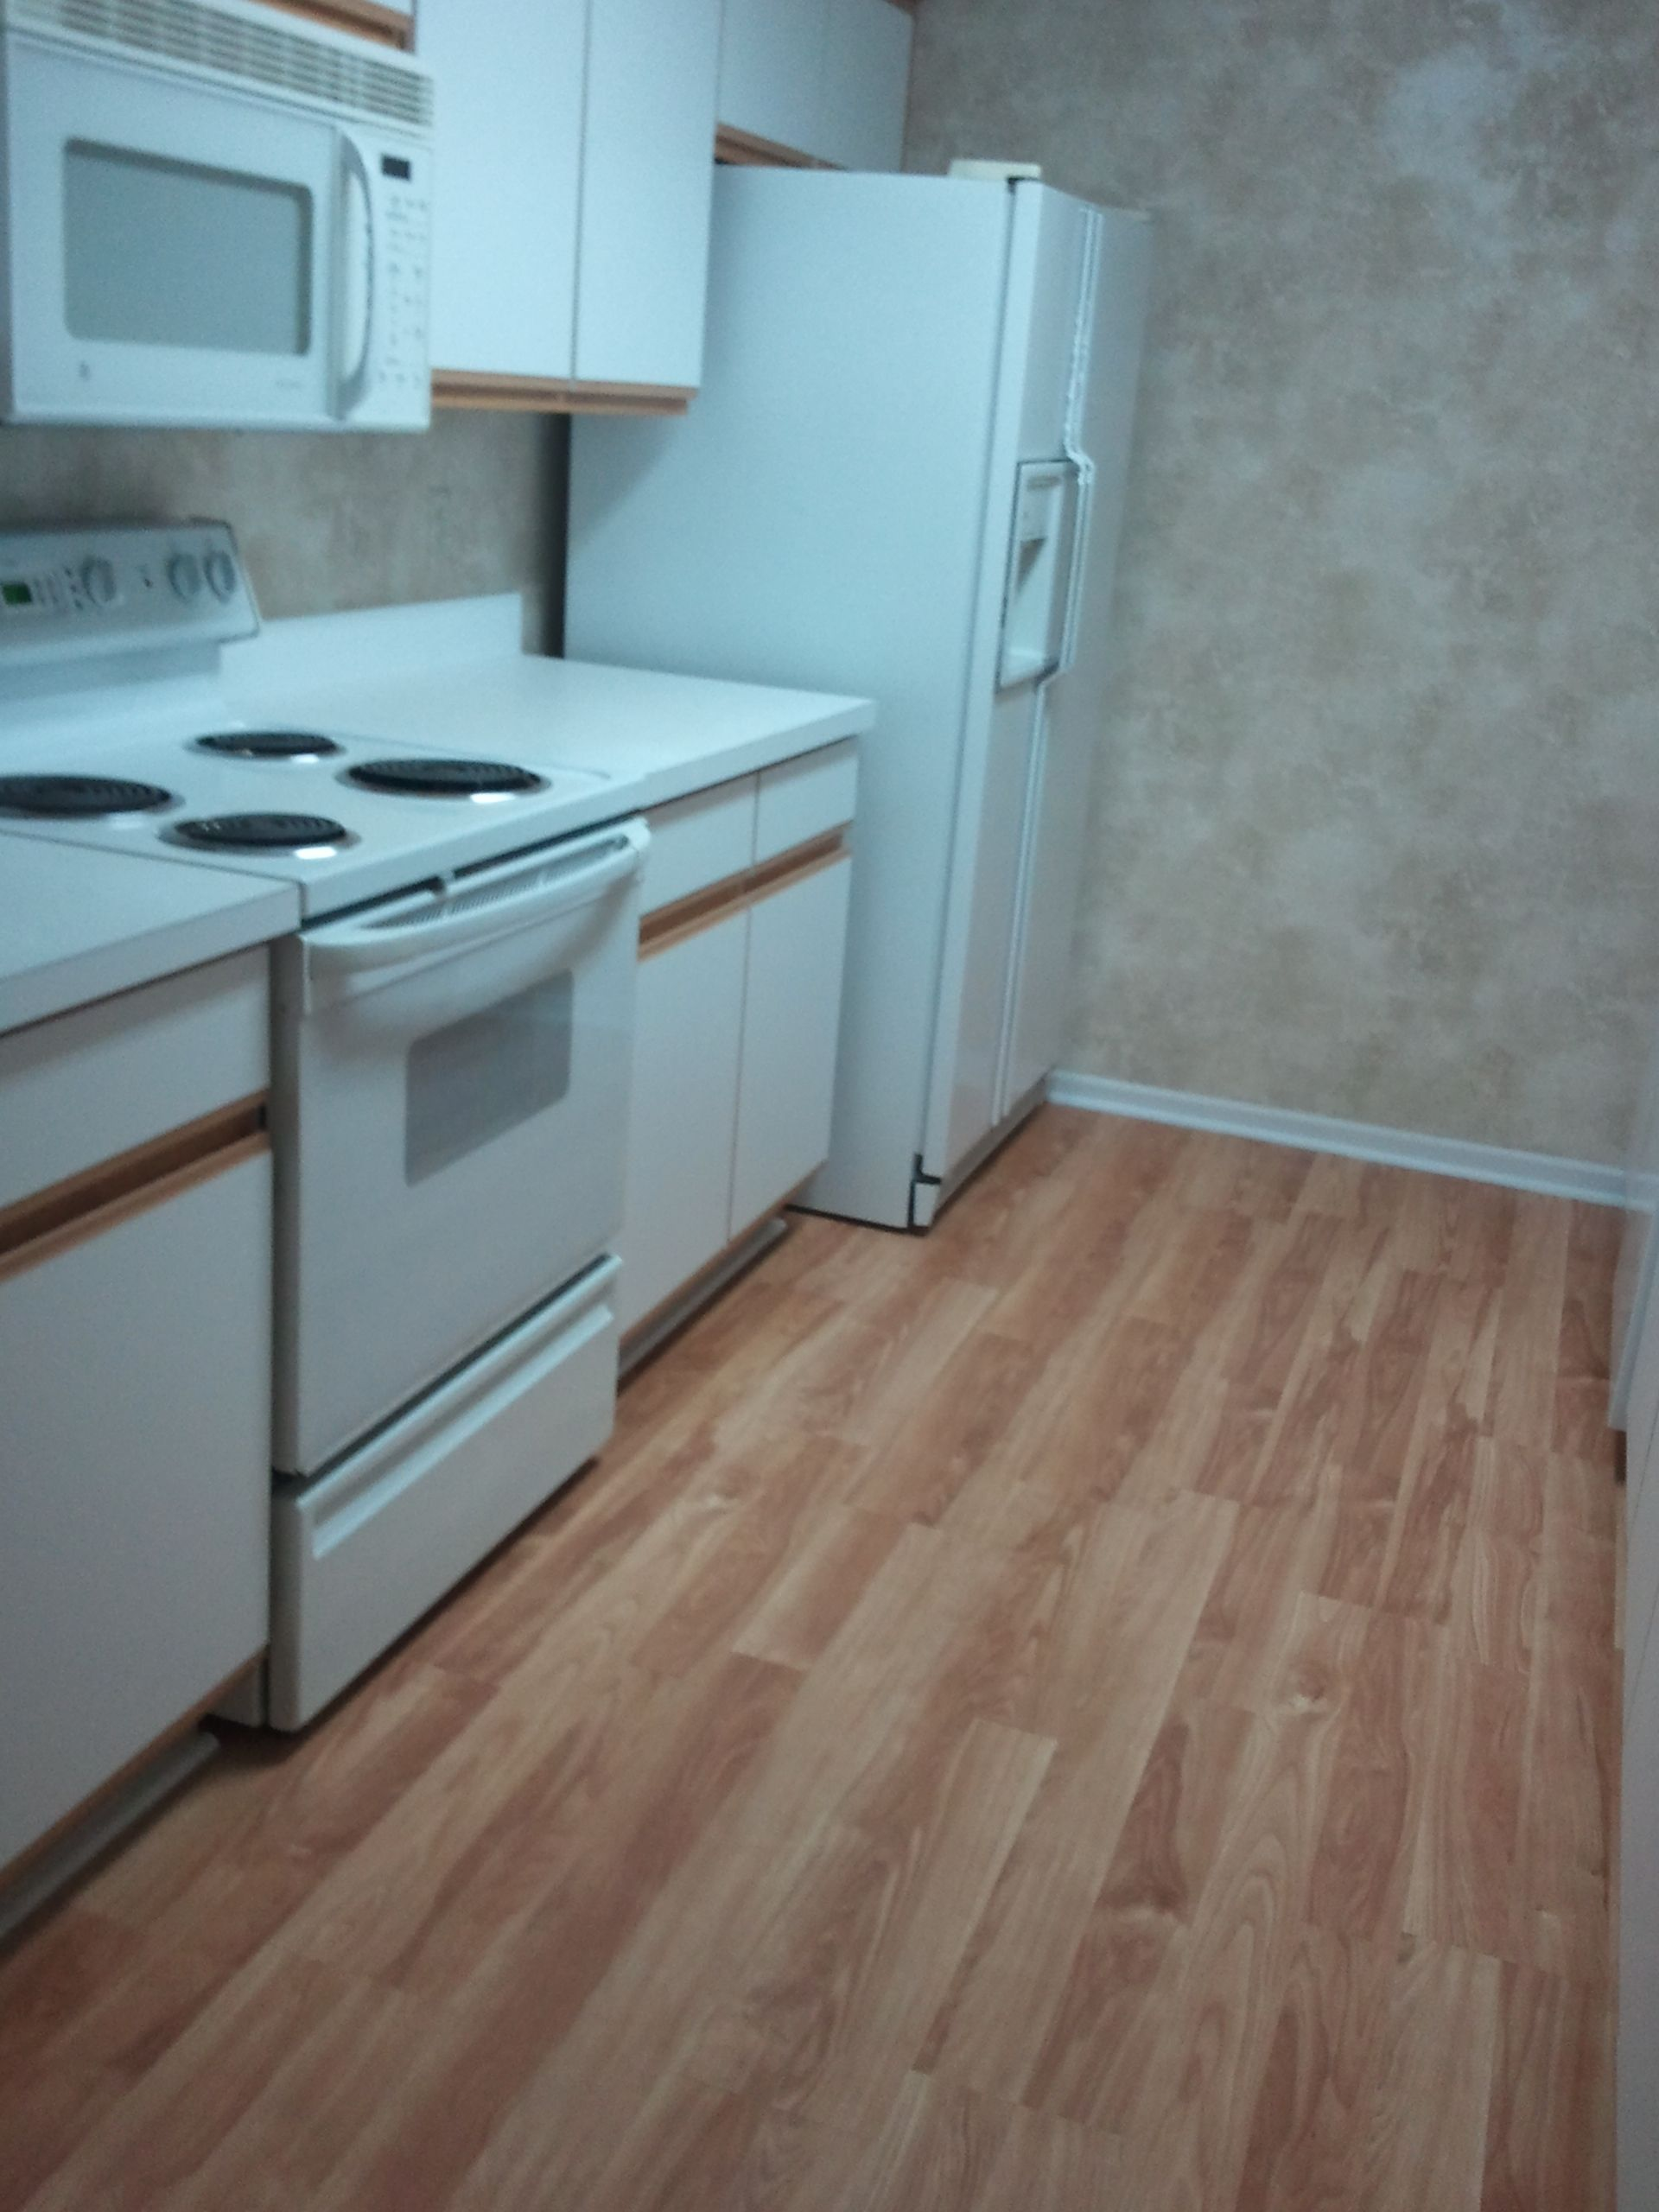 Preps Takes The Time To Install Flooring Under Kitchen Appliances A Detail Touch That Is Sure To Impress Buyers Floor Installation Pergo Flooring Flooring